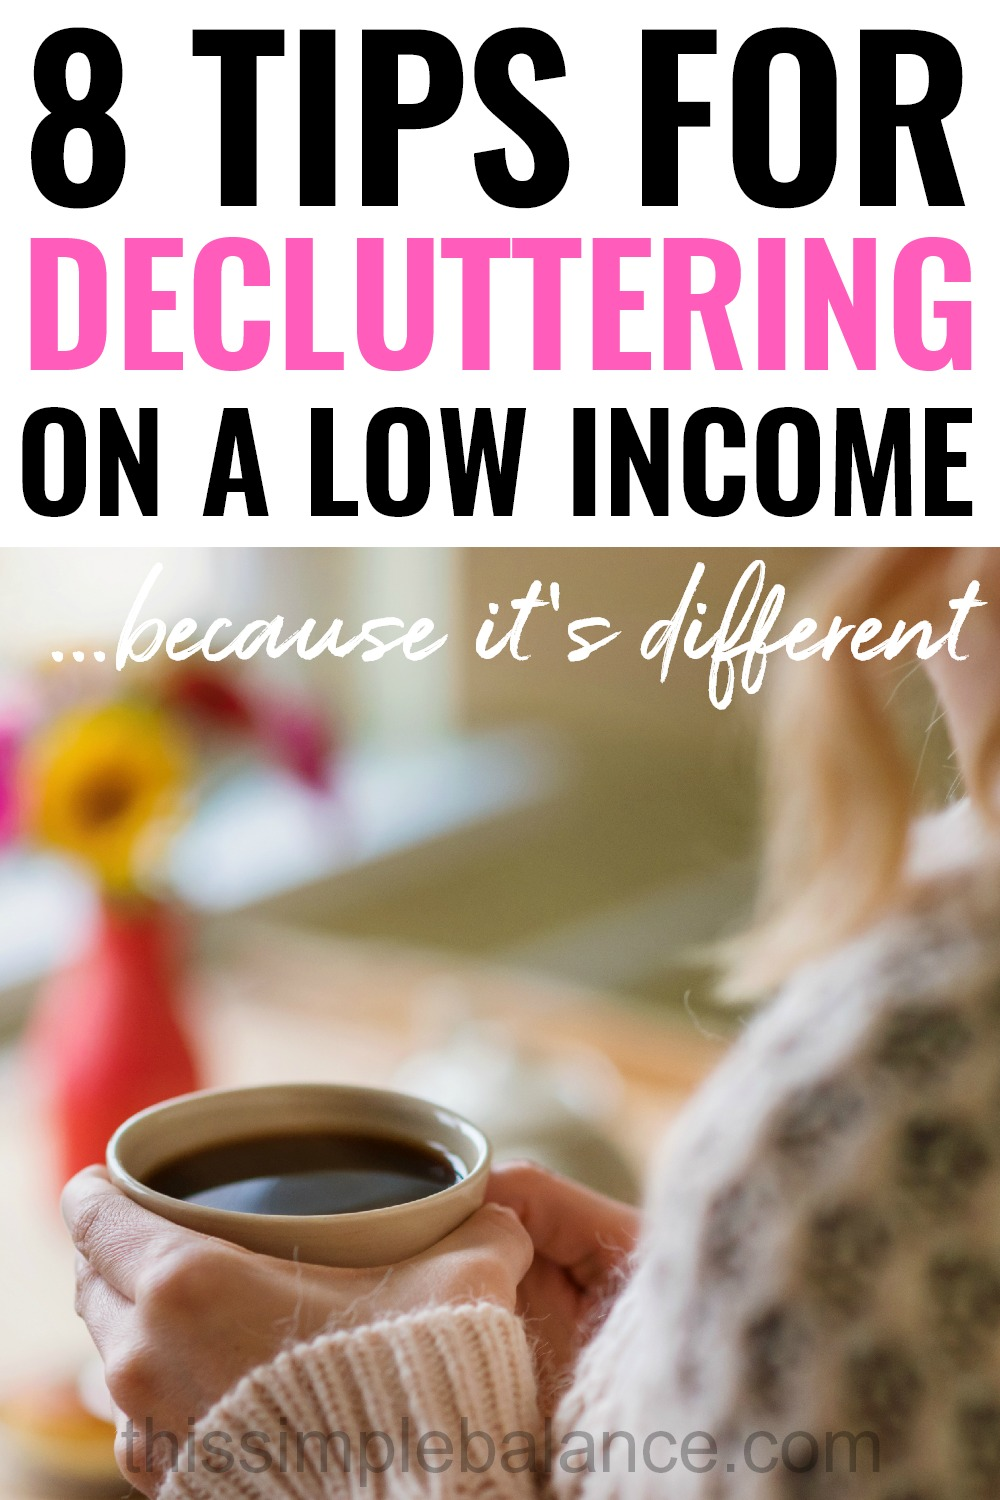 8 Tips for Decluttering on a Low Income (because it's different) #declutteringtips